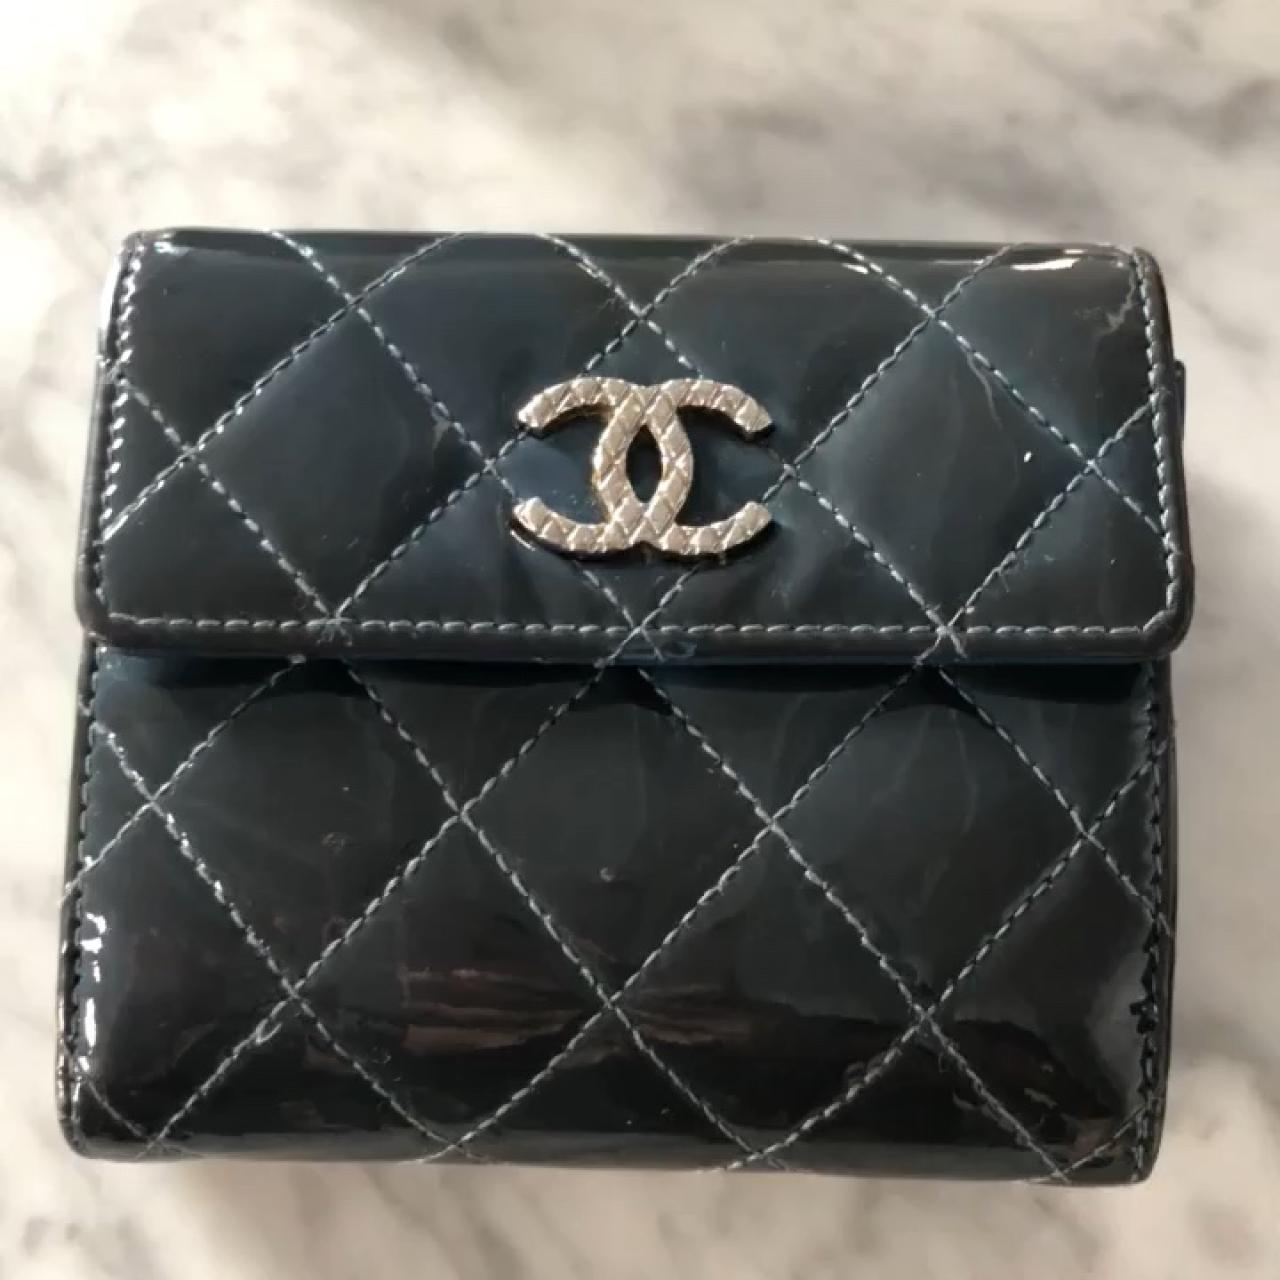 5470e272d488e2 Authentic Chanel Wallet. Comes with original box and tags. A - Depop